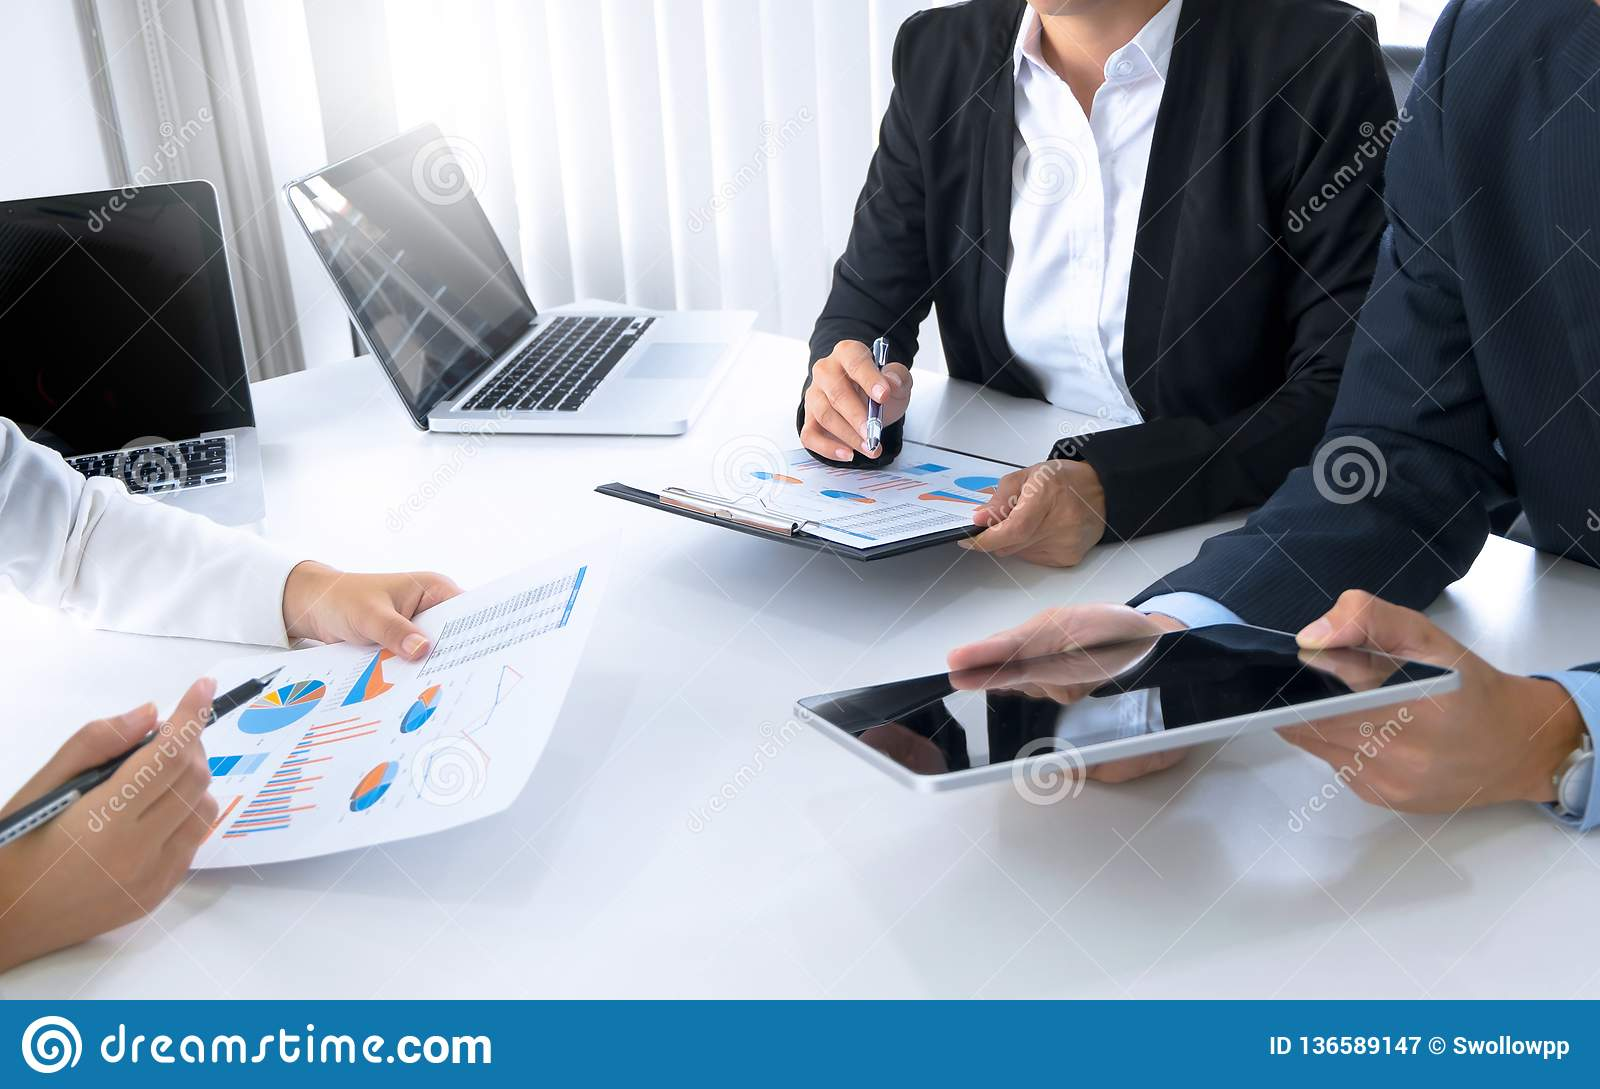 Marketing Analysis sales performance Team, Business meeting Concept